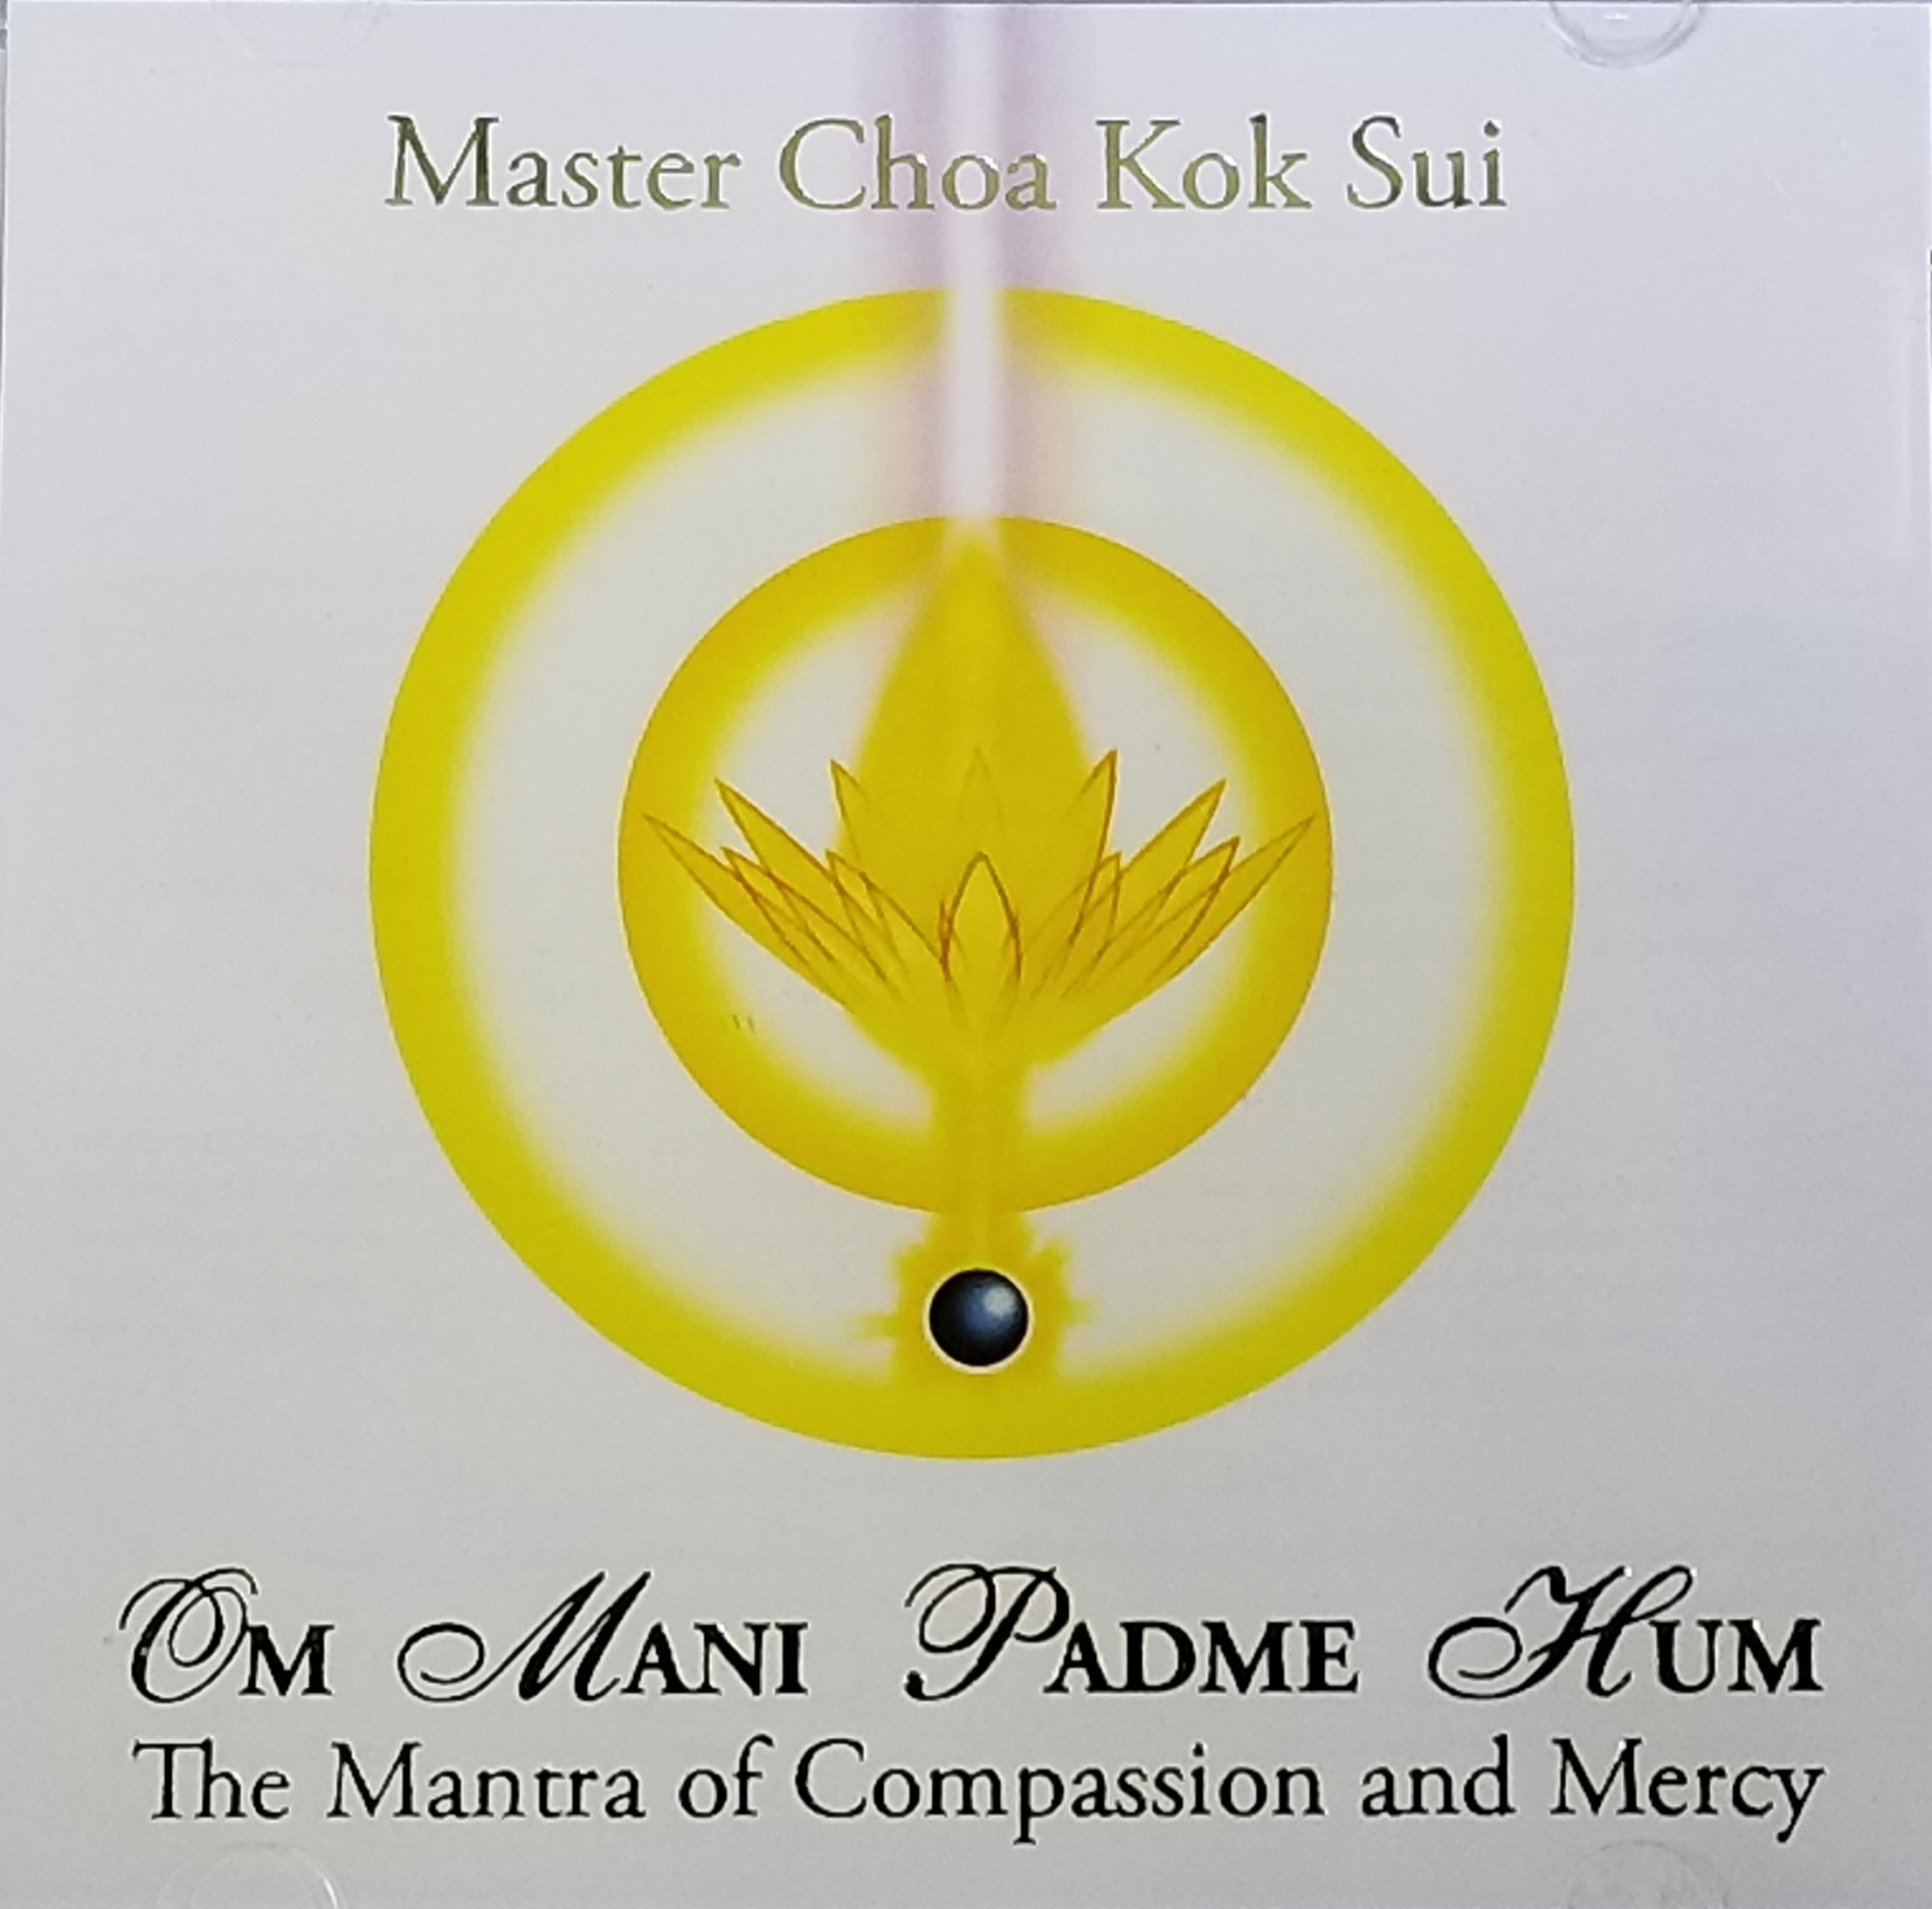 Om Mani Padme Hum; The Mantra of Compassion and Mercy